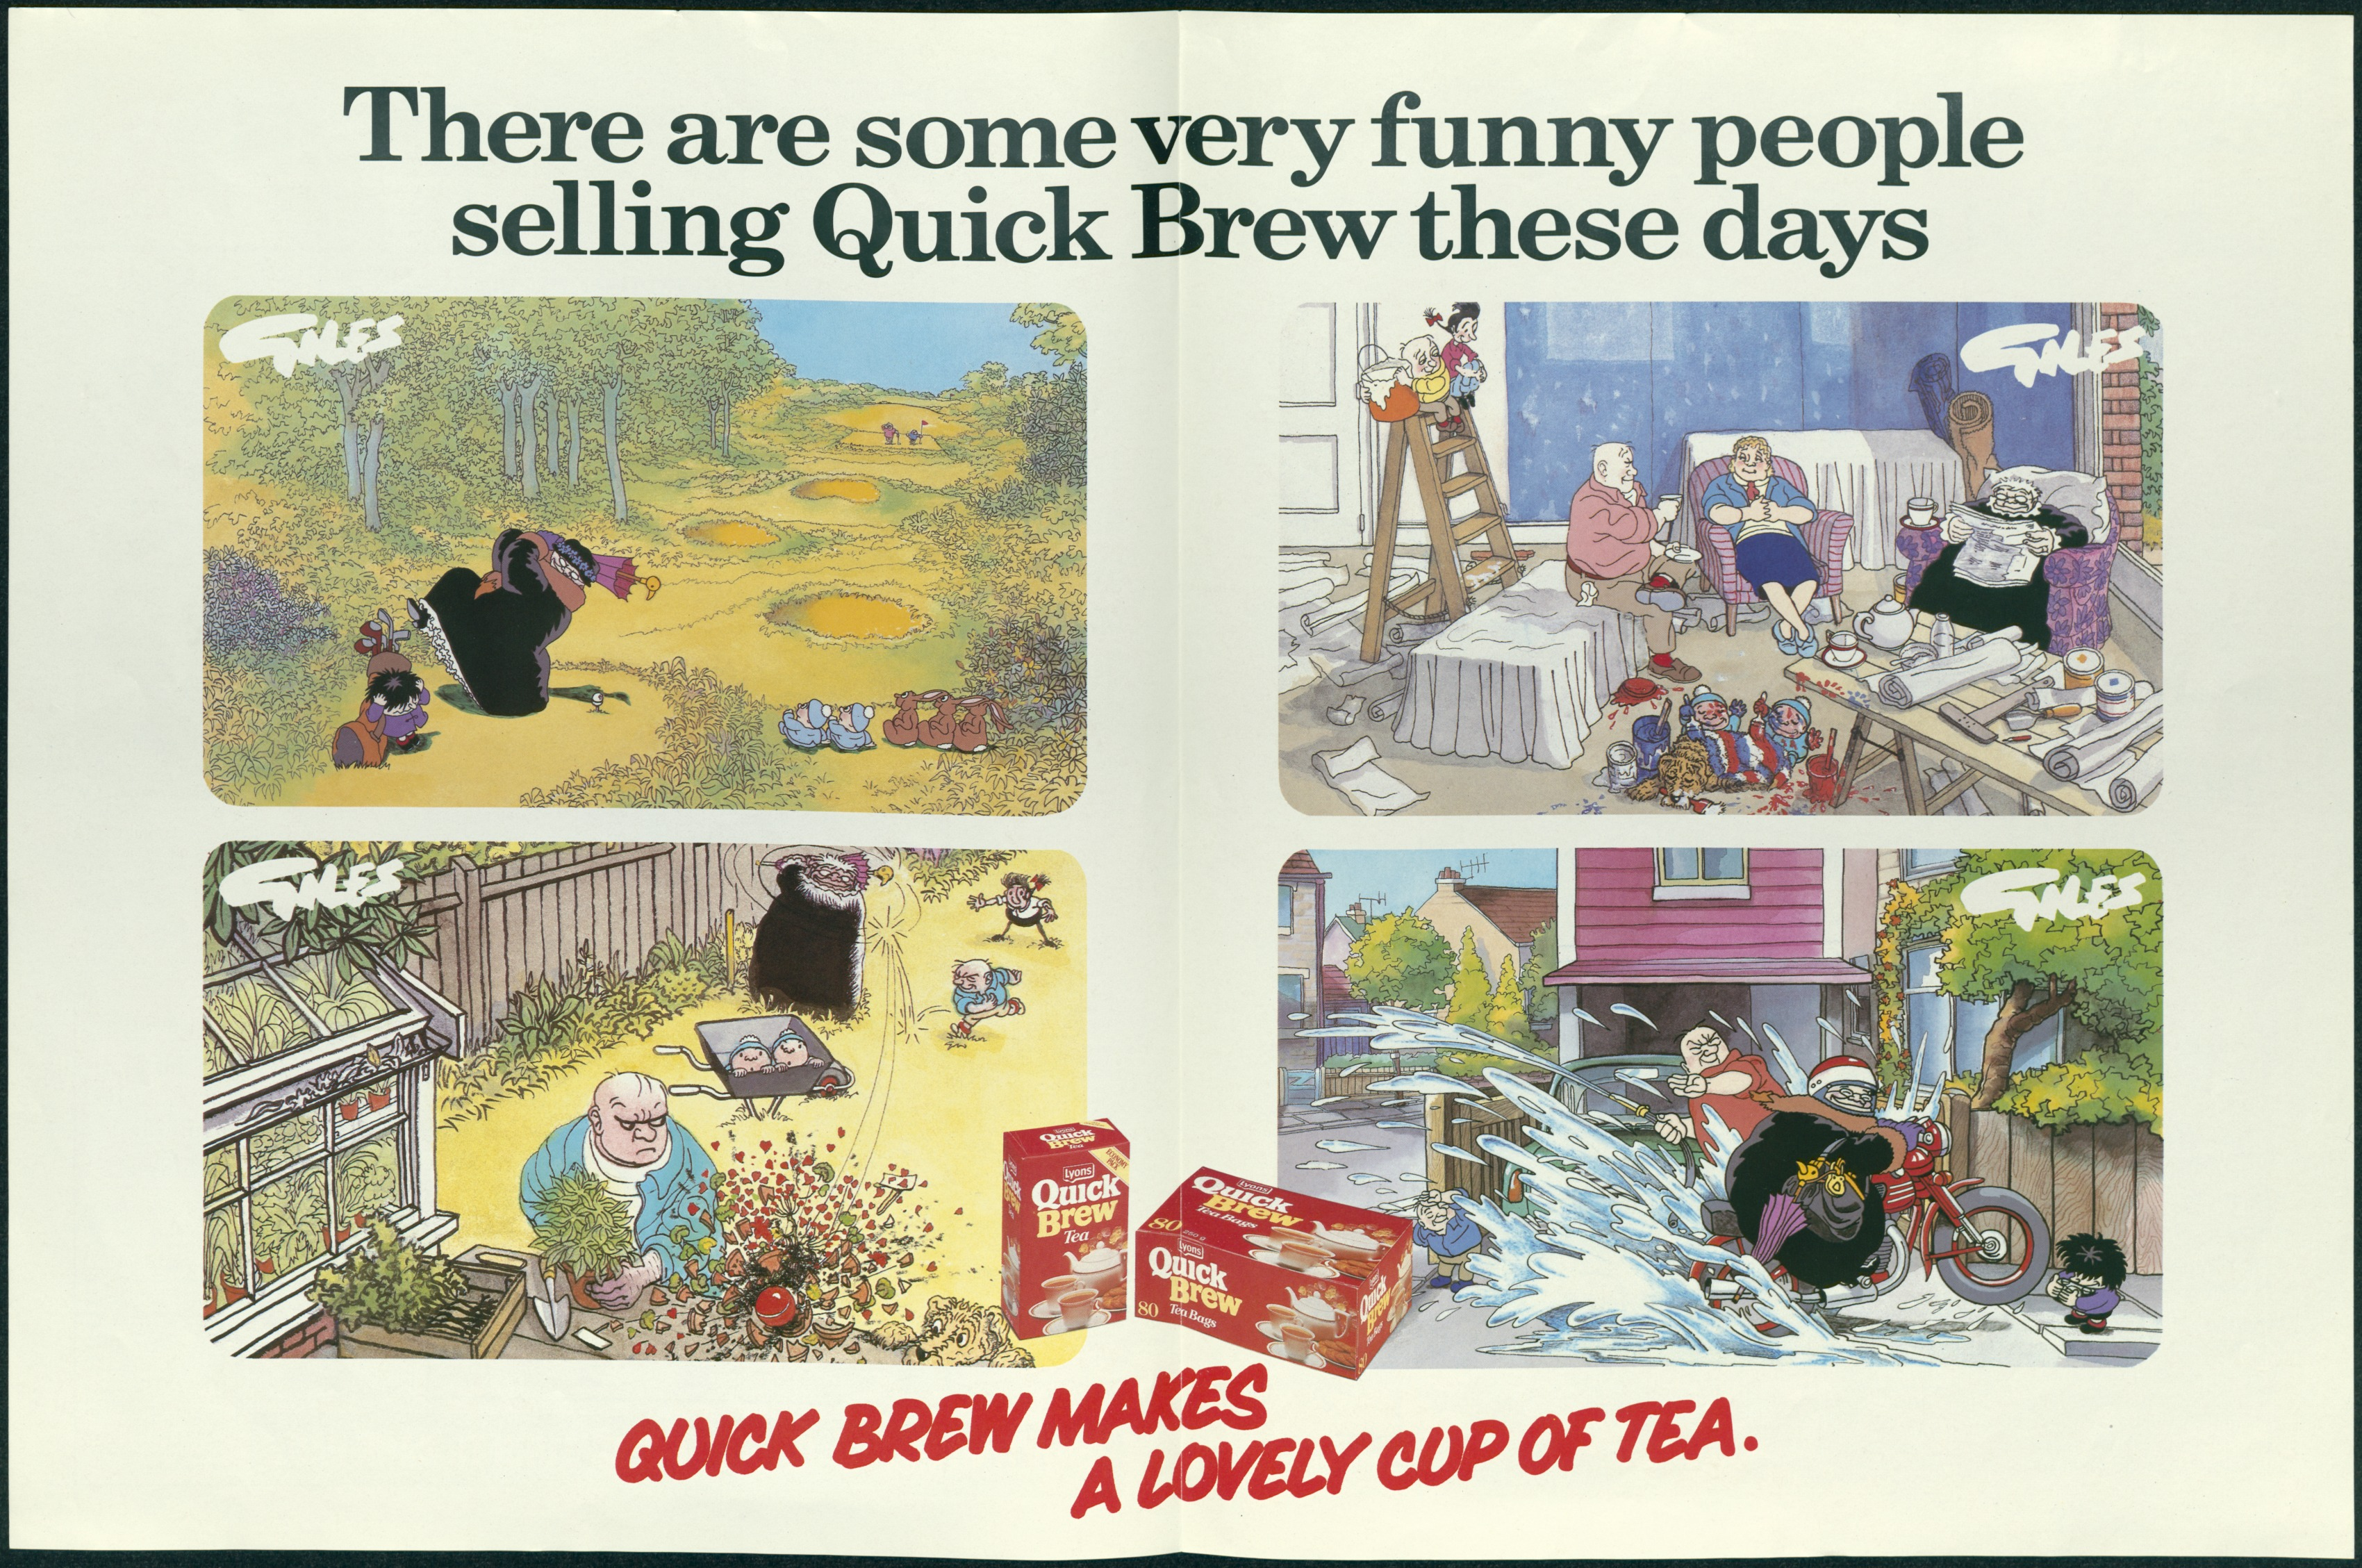 Centre spread of Special 'T-Day Edition' of the Daily Express, celebrating the appearance of the Giles family in the Tetley Quick Brew adverts - Carl Giles, Daily Express, c. 1983 (Image ref: GAAD0021B)